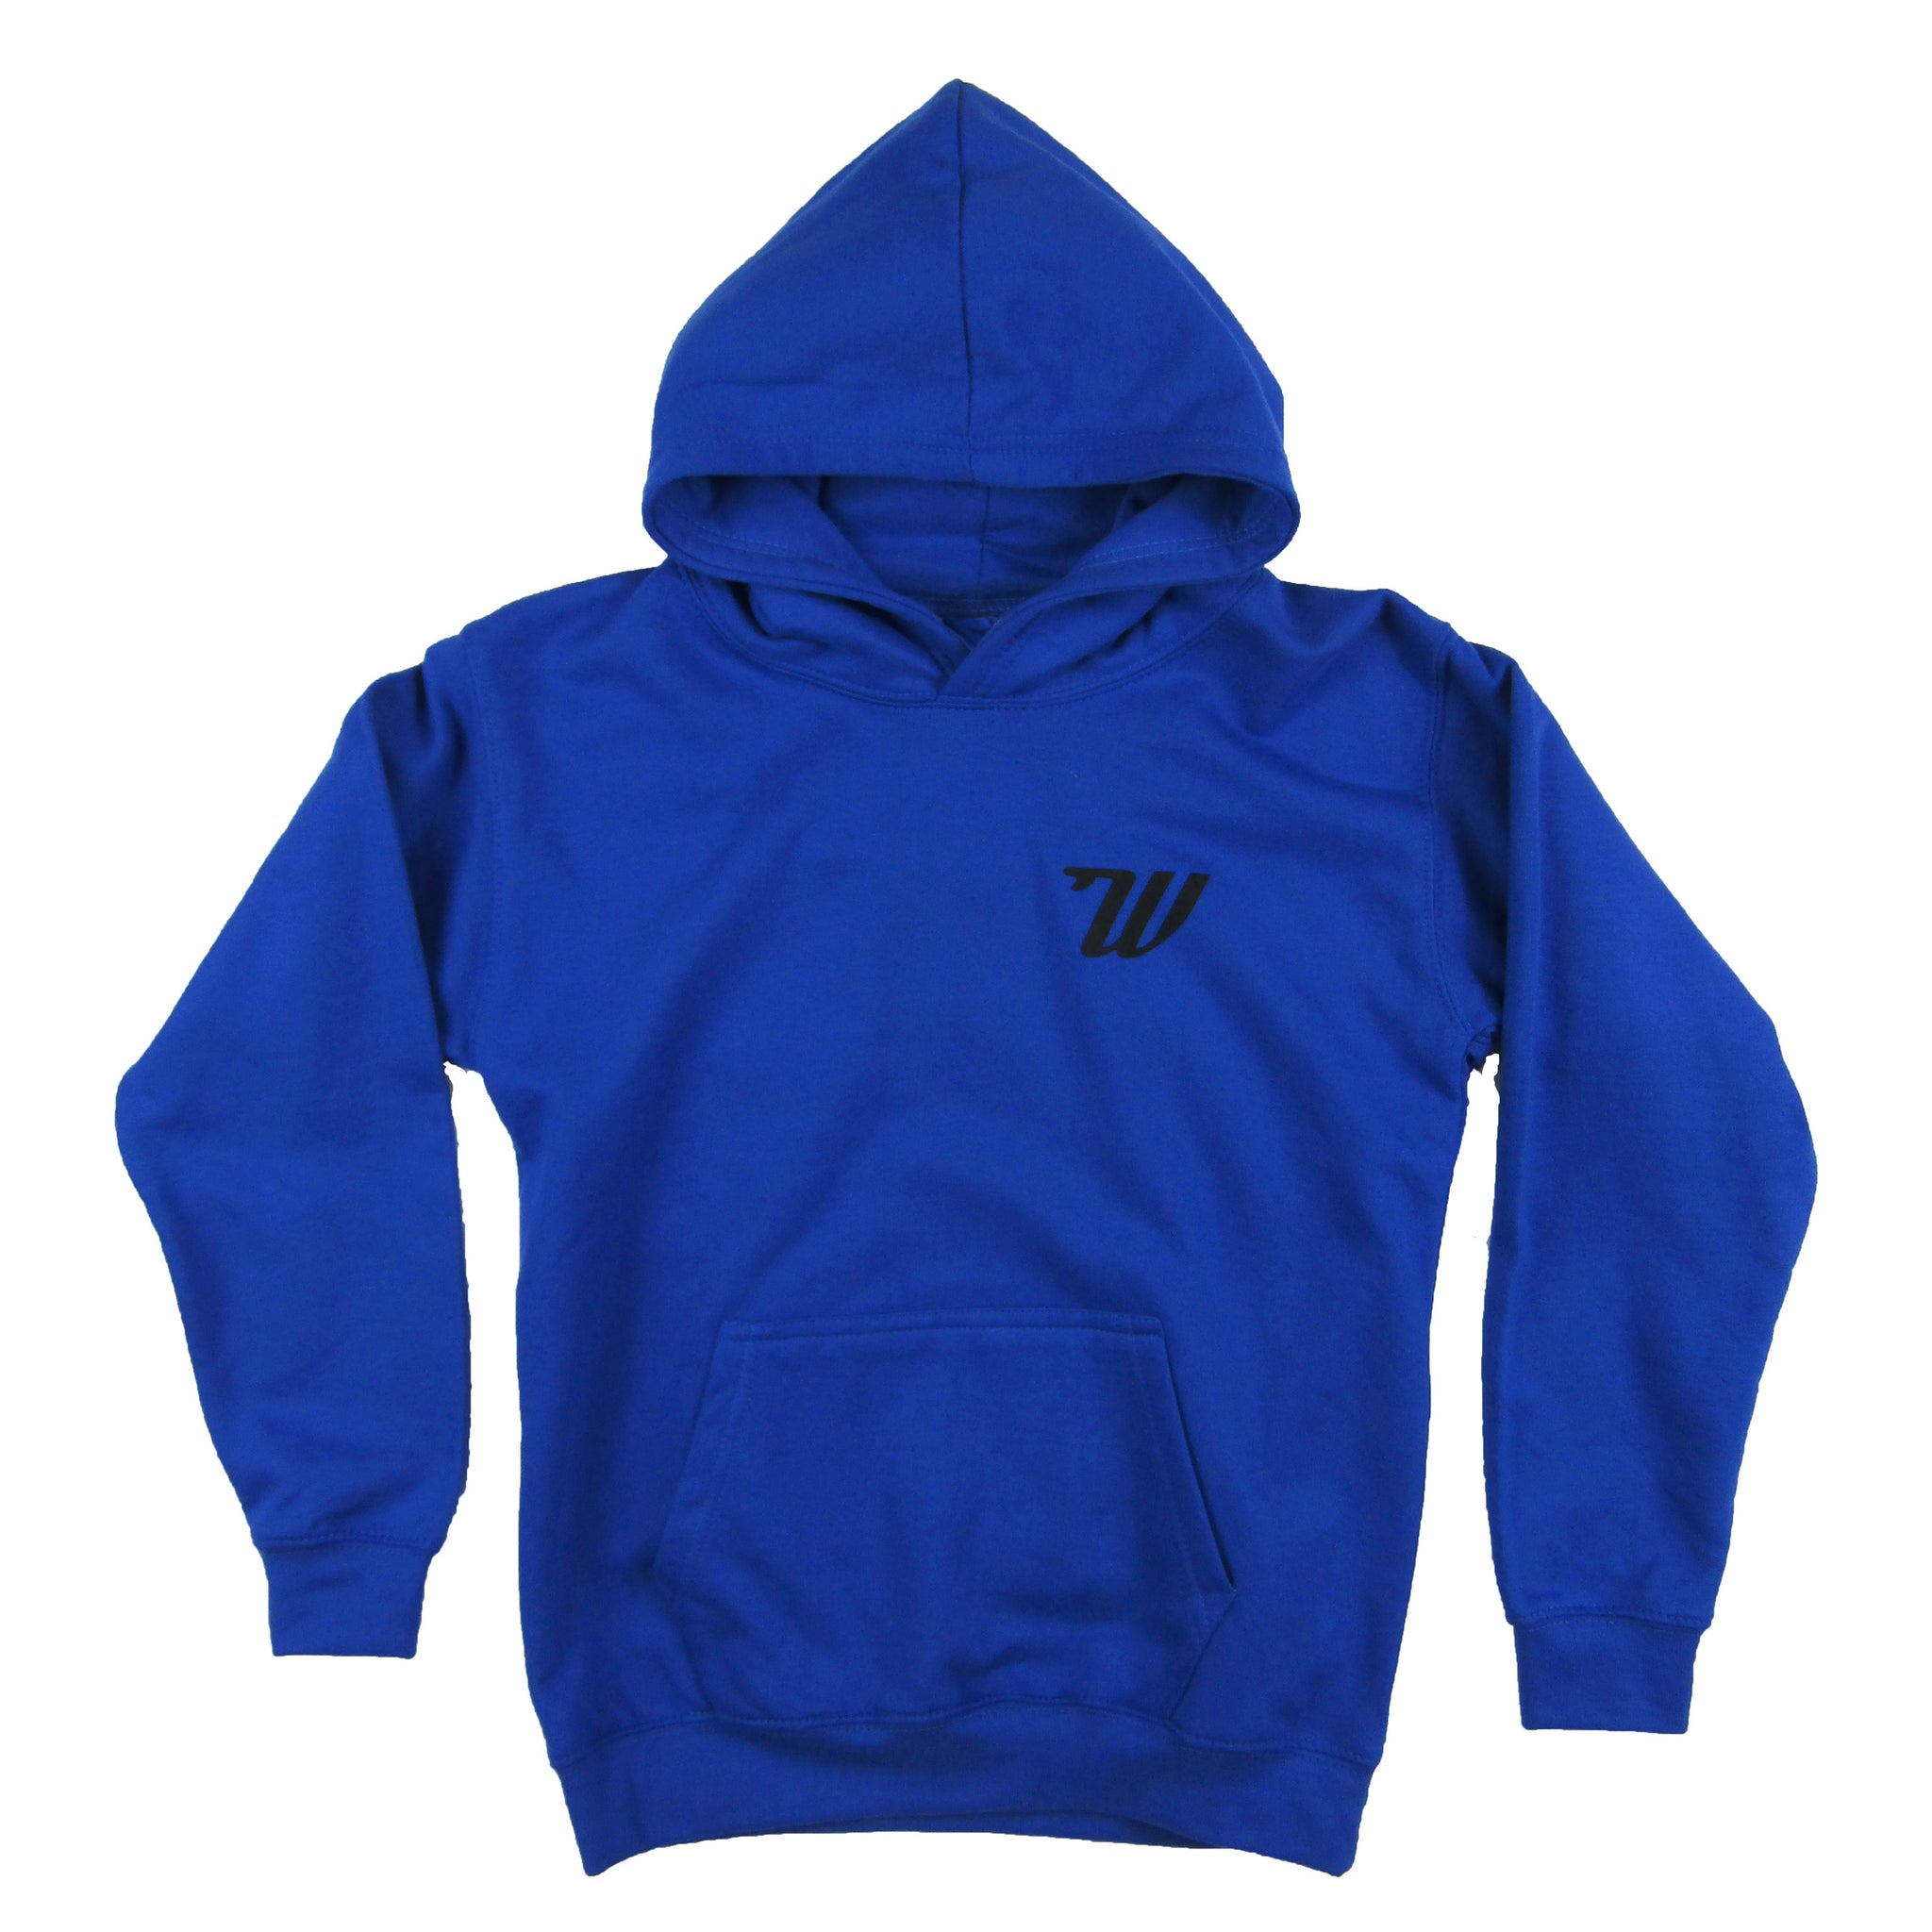 Woodies - Boys - Blue Hoody